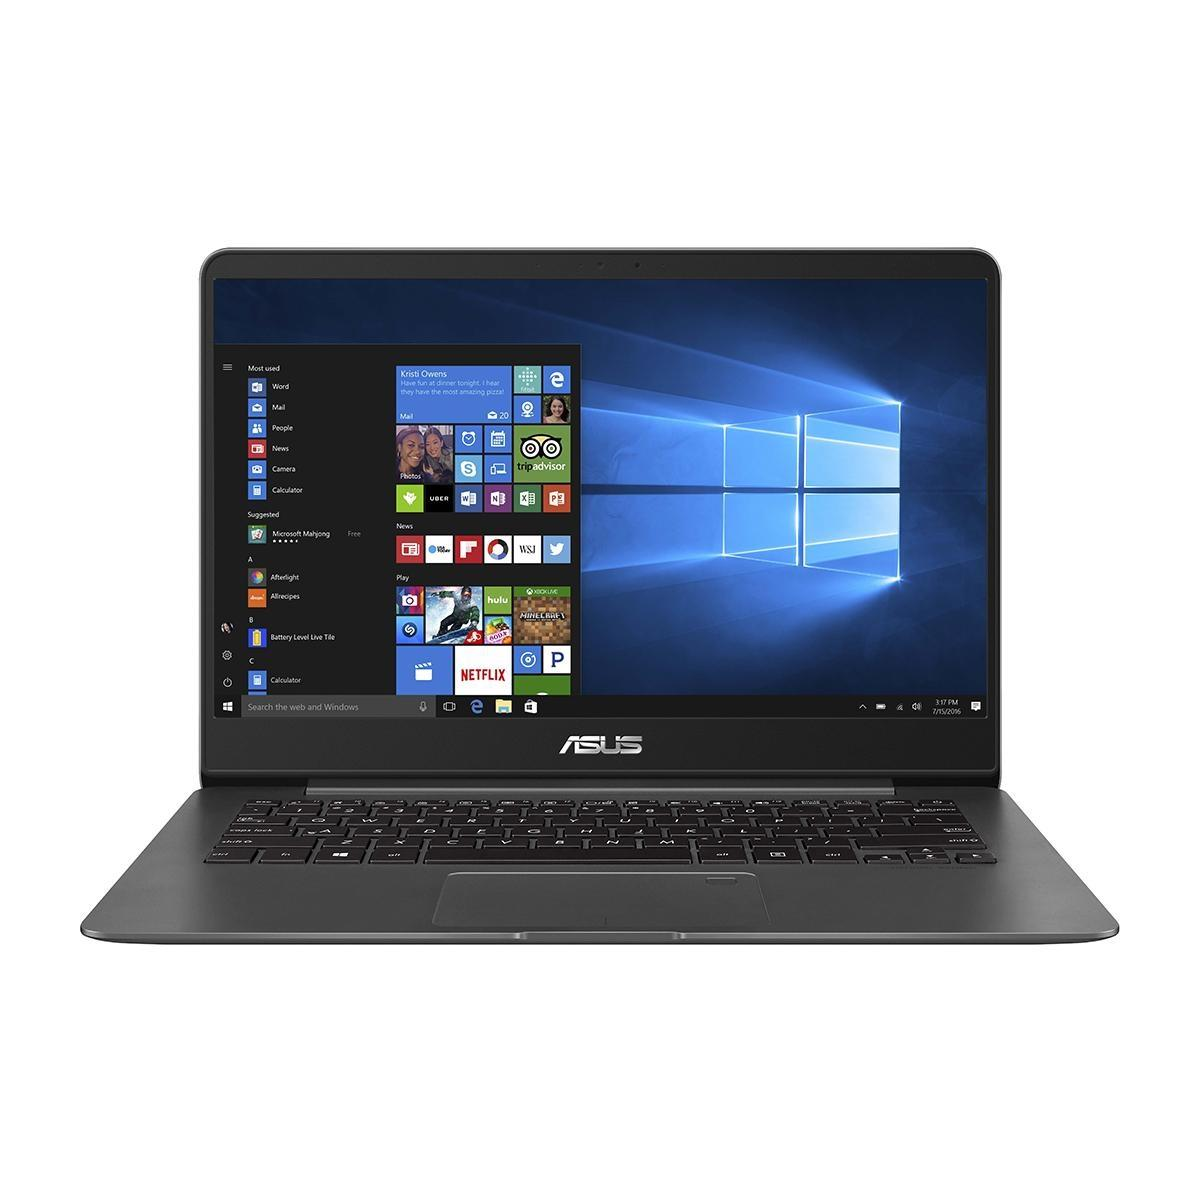 ASUS A456U 14 INCH FHD i5-7200U 4GB DDR4 RAM 1TB HDD GT930M 2GB GRAPHICS WIN 10